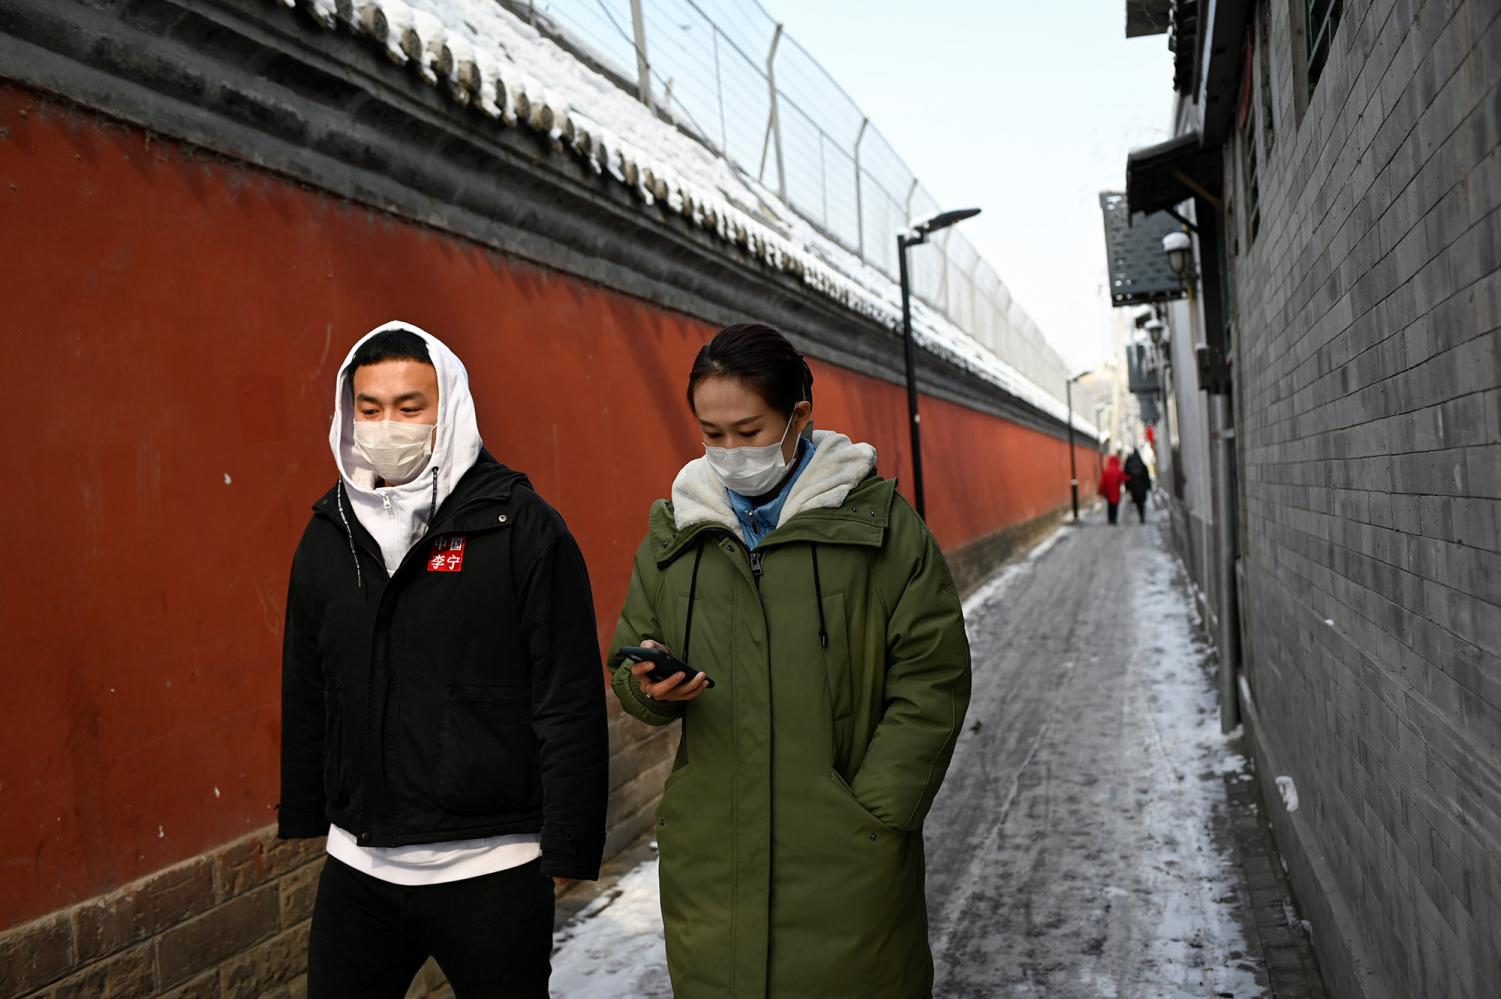 People wearing protective face masks walk through an alley in Beijing on Friday, Feb. 7, 2020. (AFP/Getty Images/TNS)